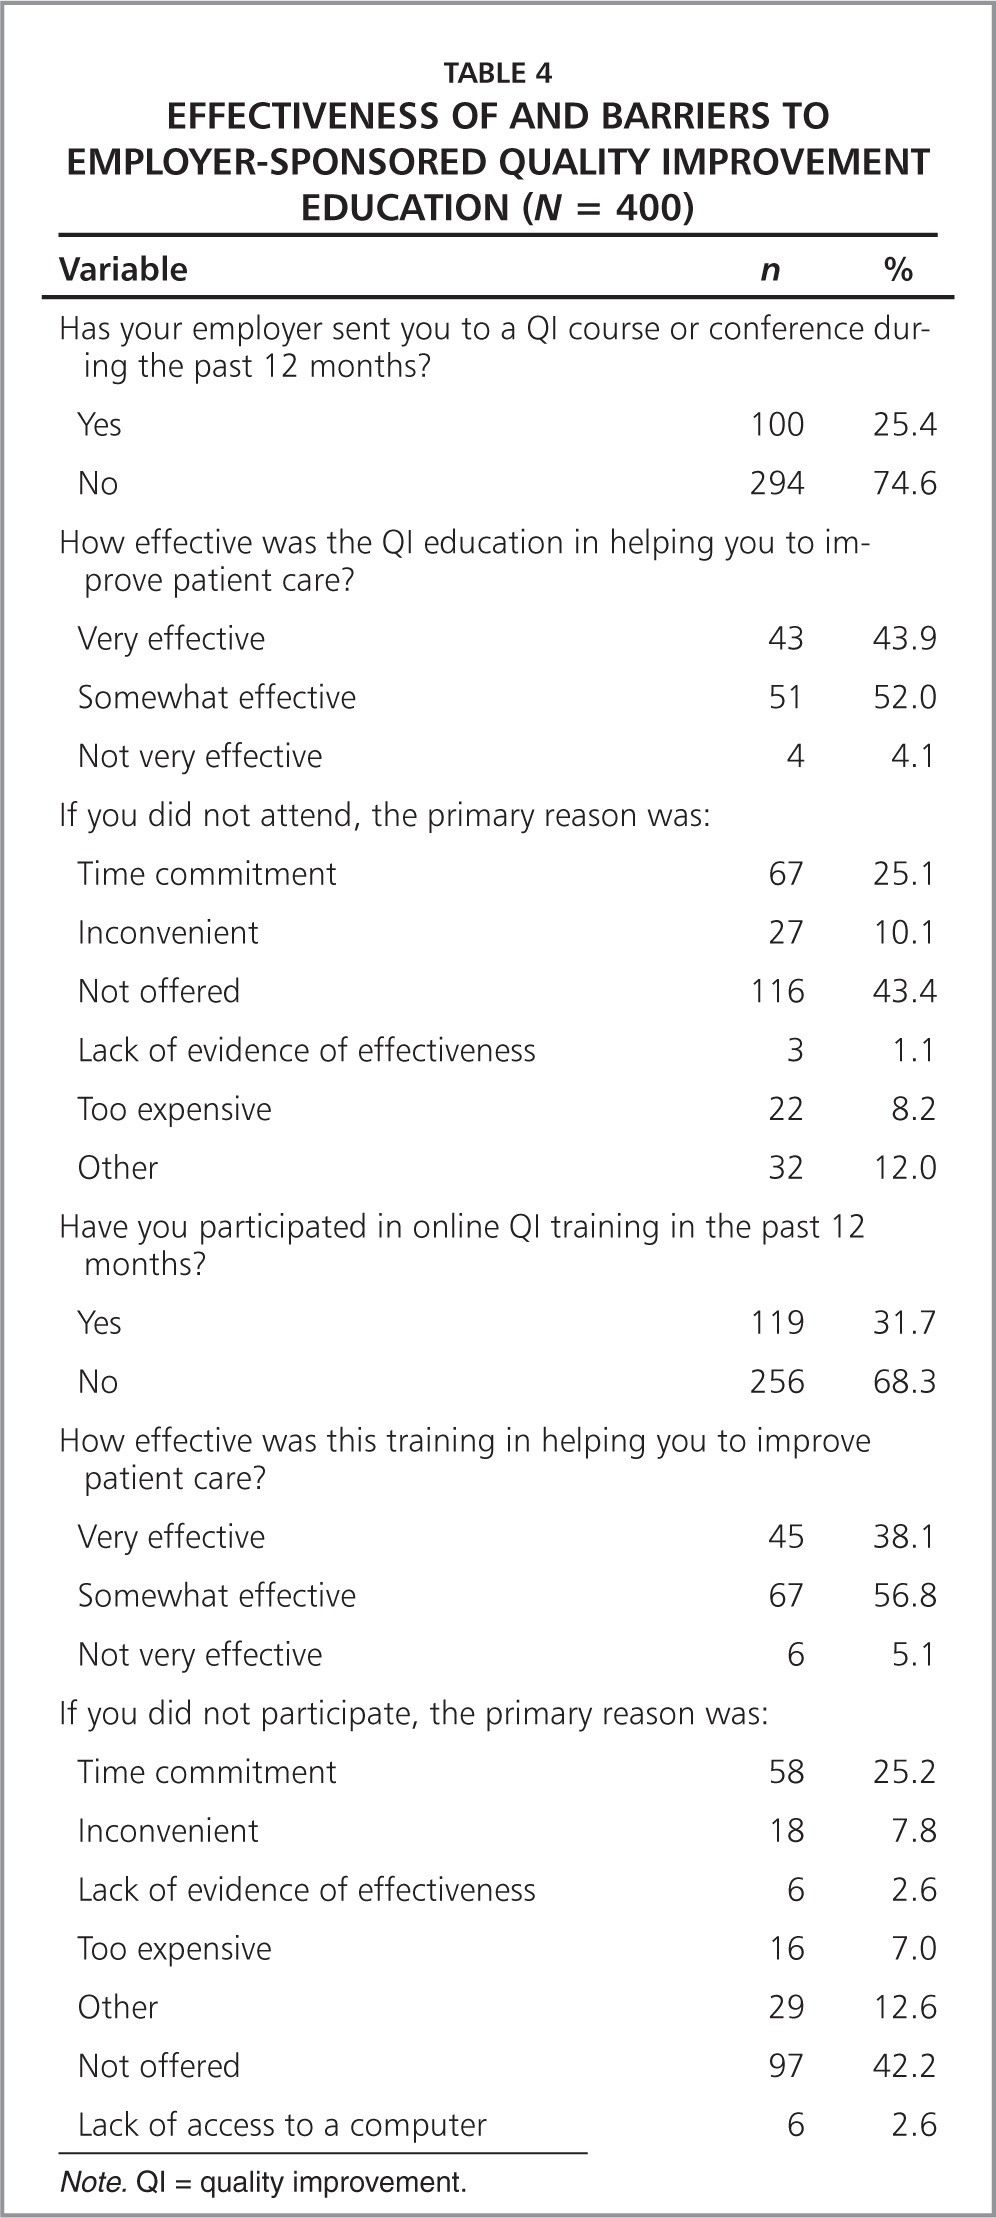 Effectiveness of and Barriers to Employer-Sponsored Quality Improvement Education (N = 400)